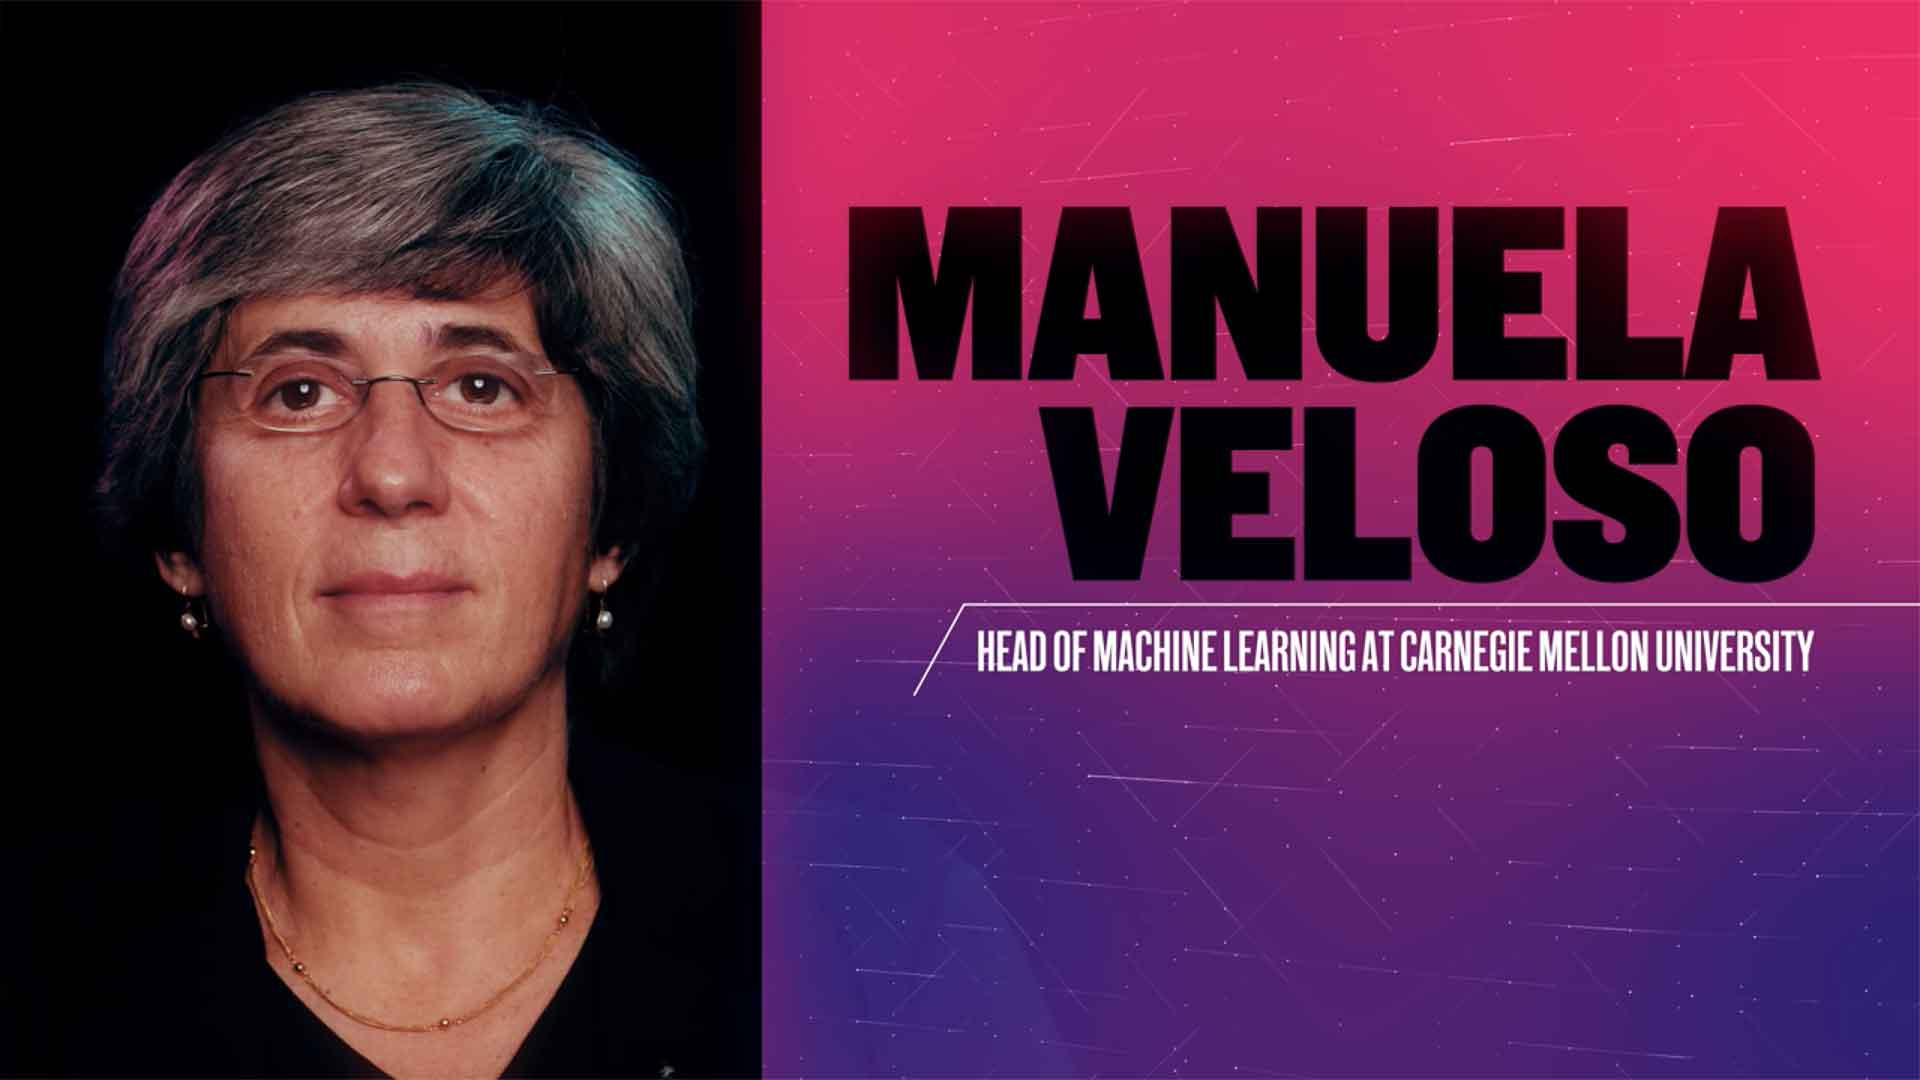 Manuela Veloso Portrayed